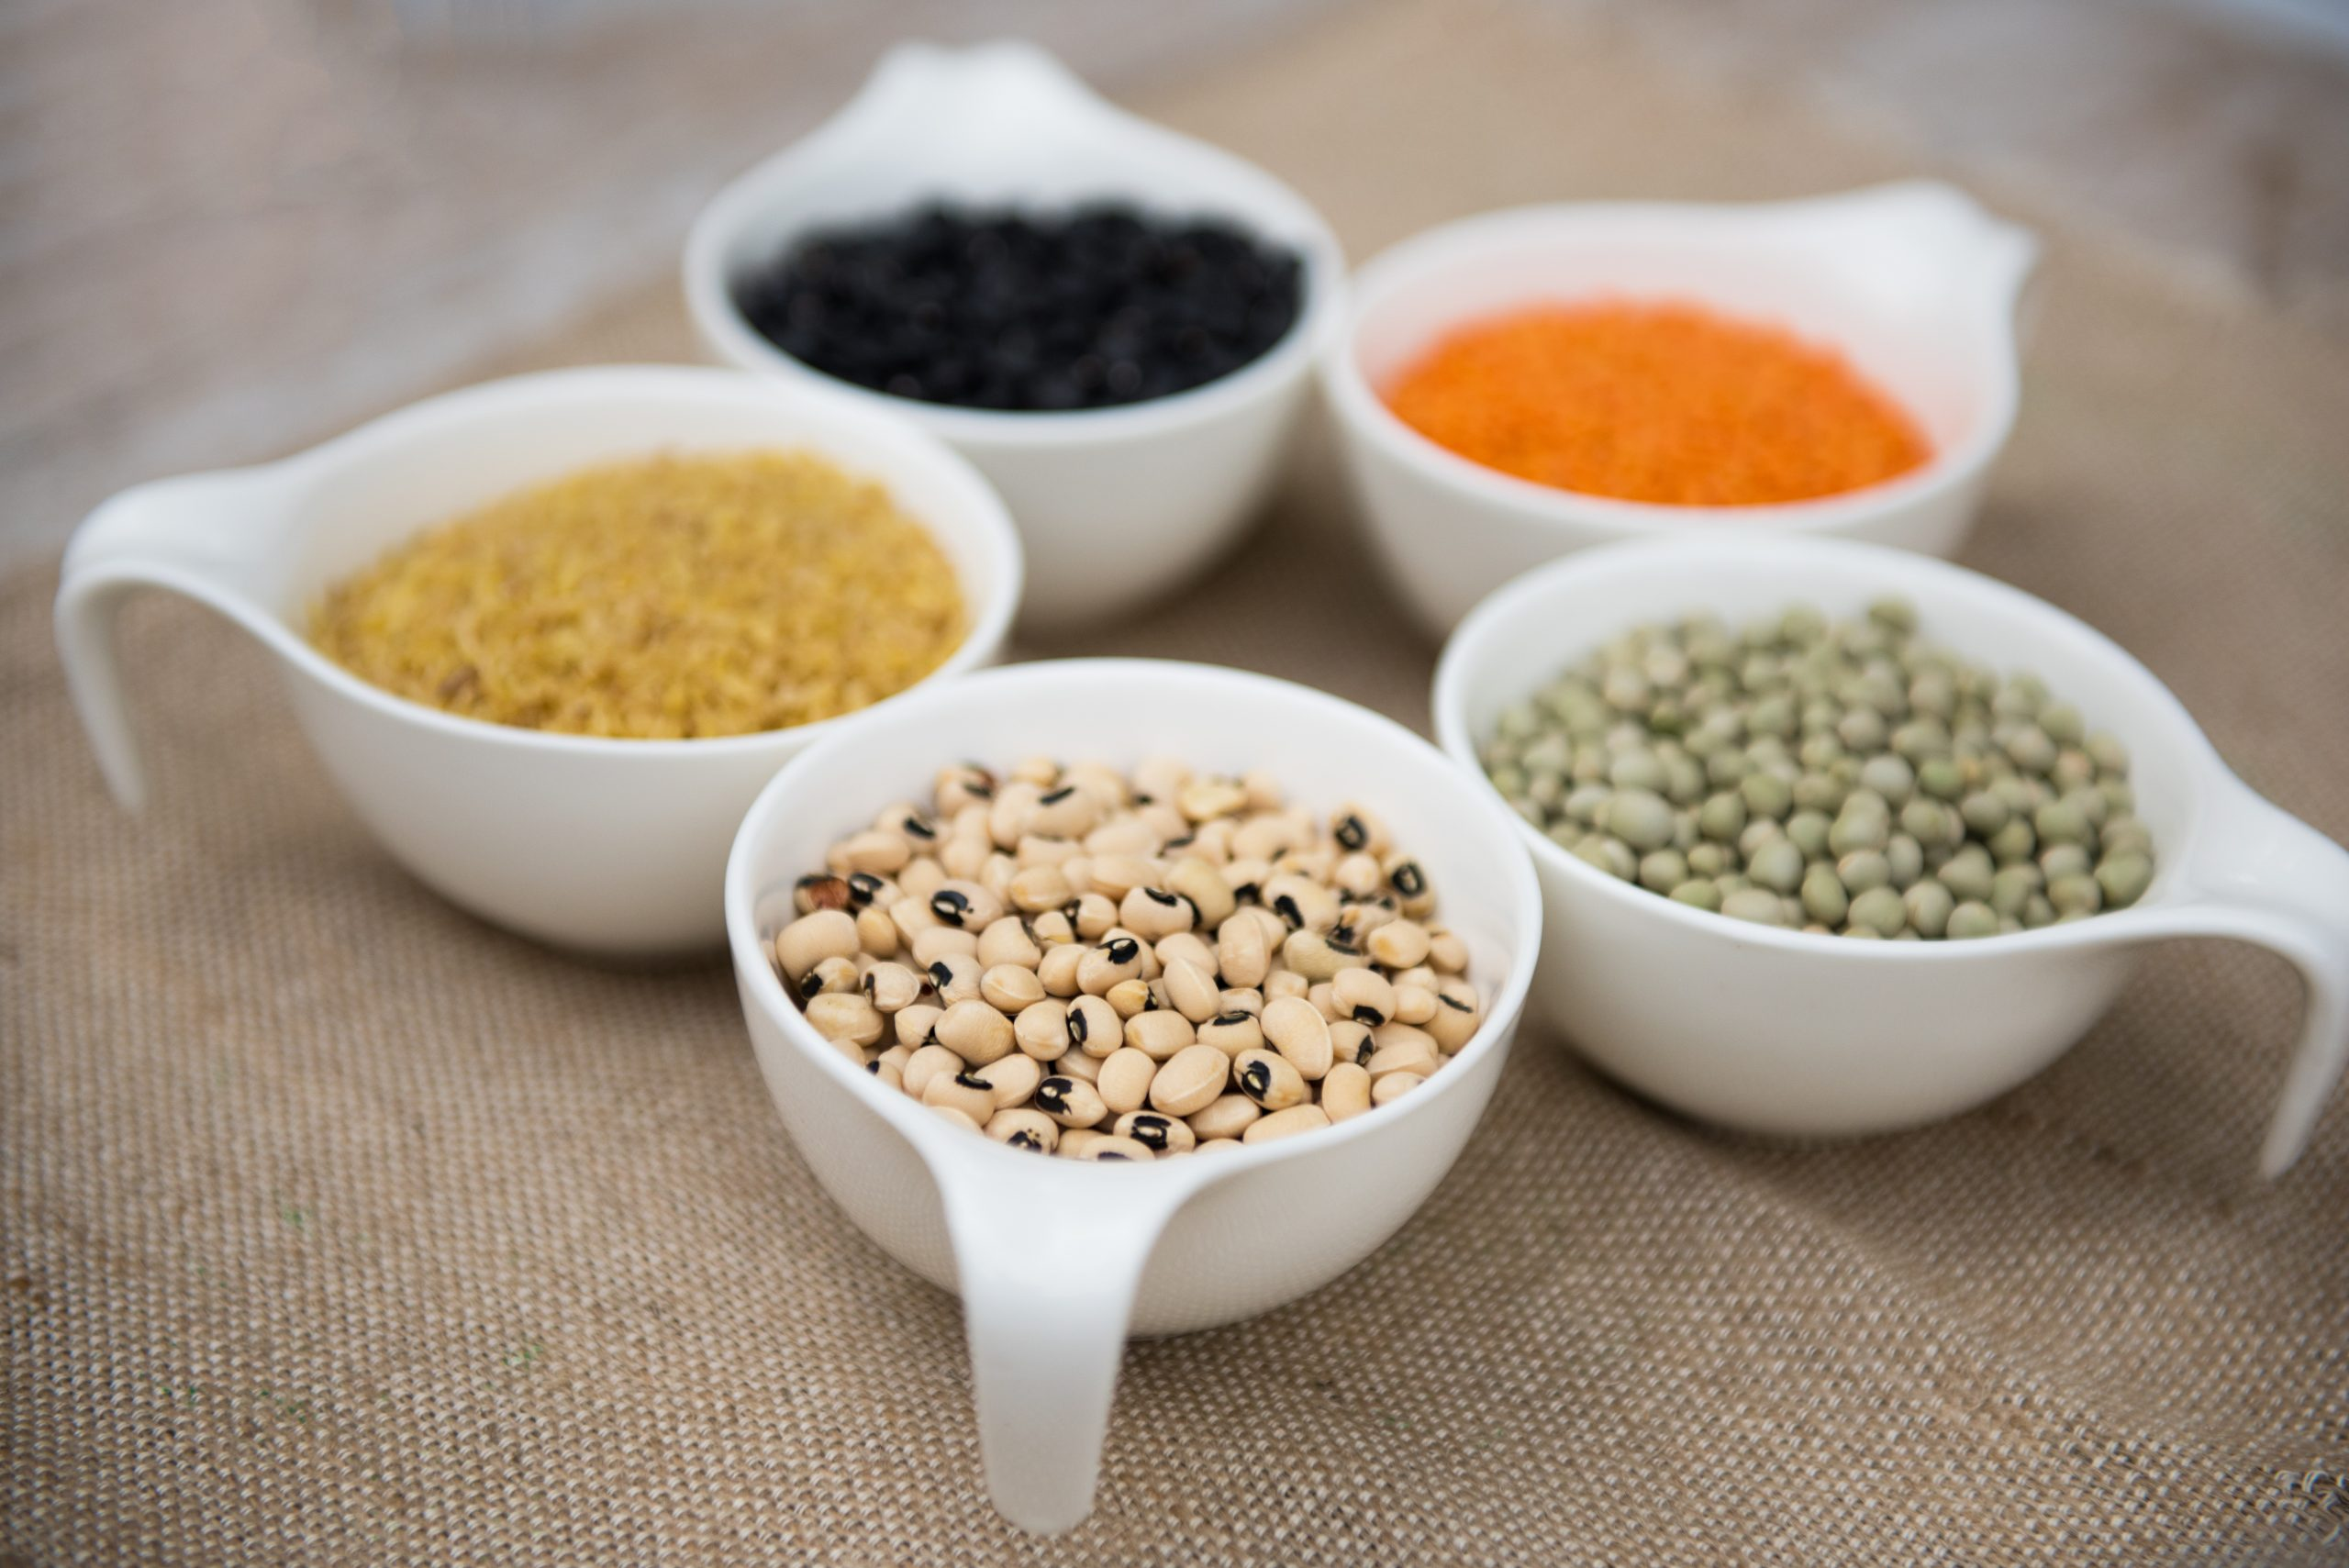 What Dishes are Gram and Pulses Used in